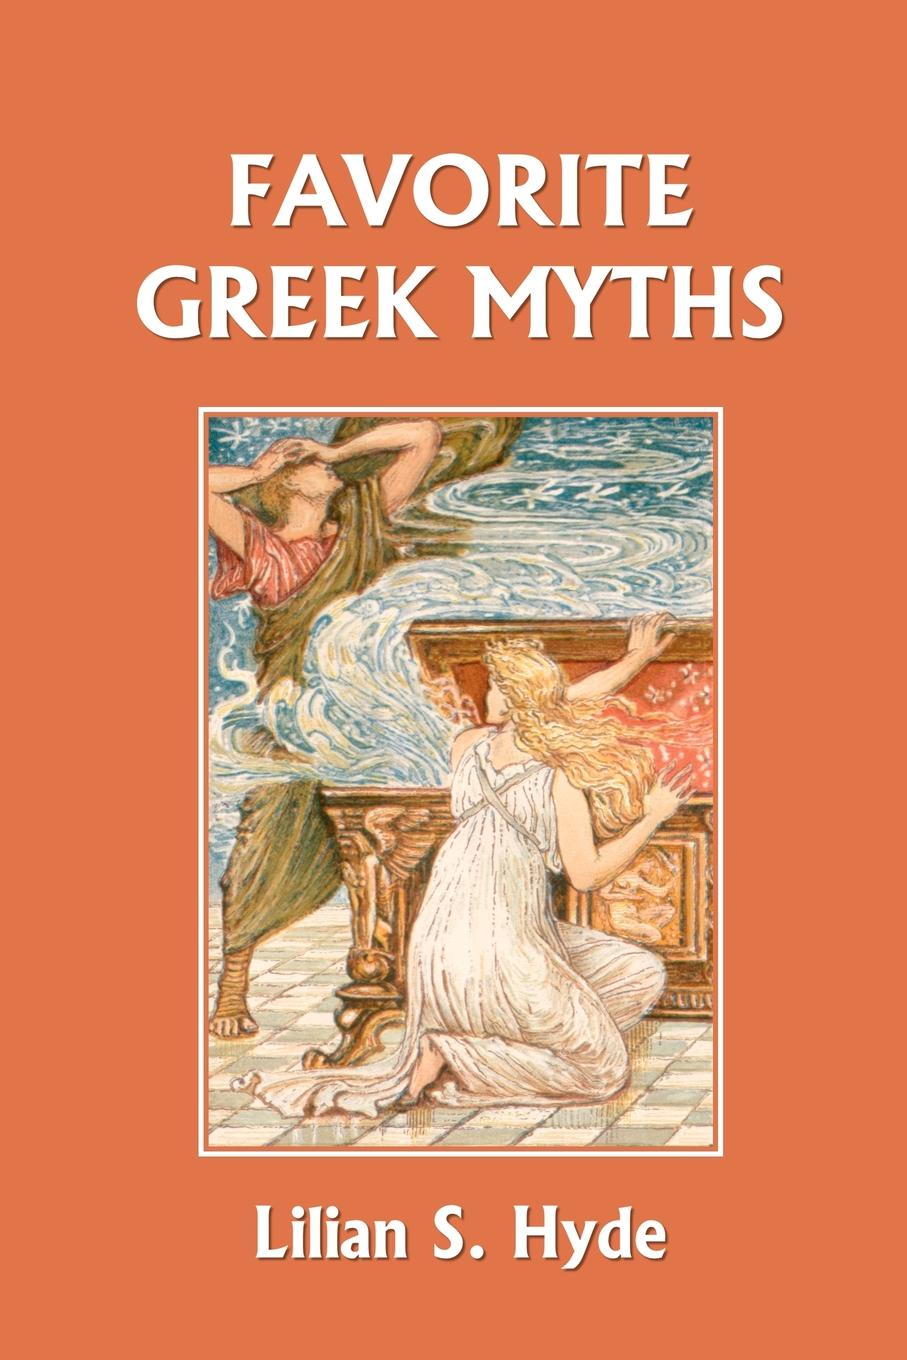 Lilian Stoughton Hyde Favorite Greek Myths (Yesterday's Classics) jason tyler xda developers android hacker s toolkit the complete guide to rooting roms and theming